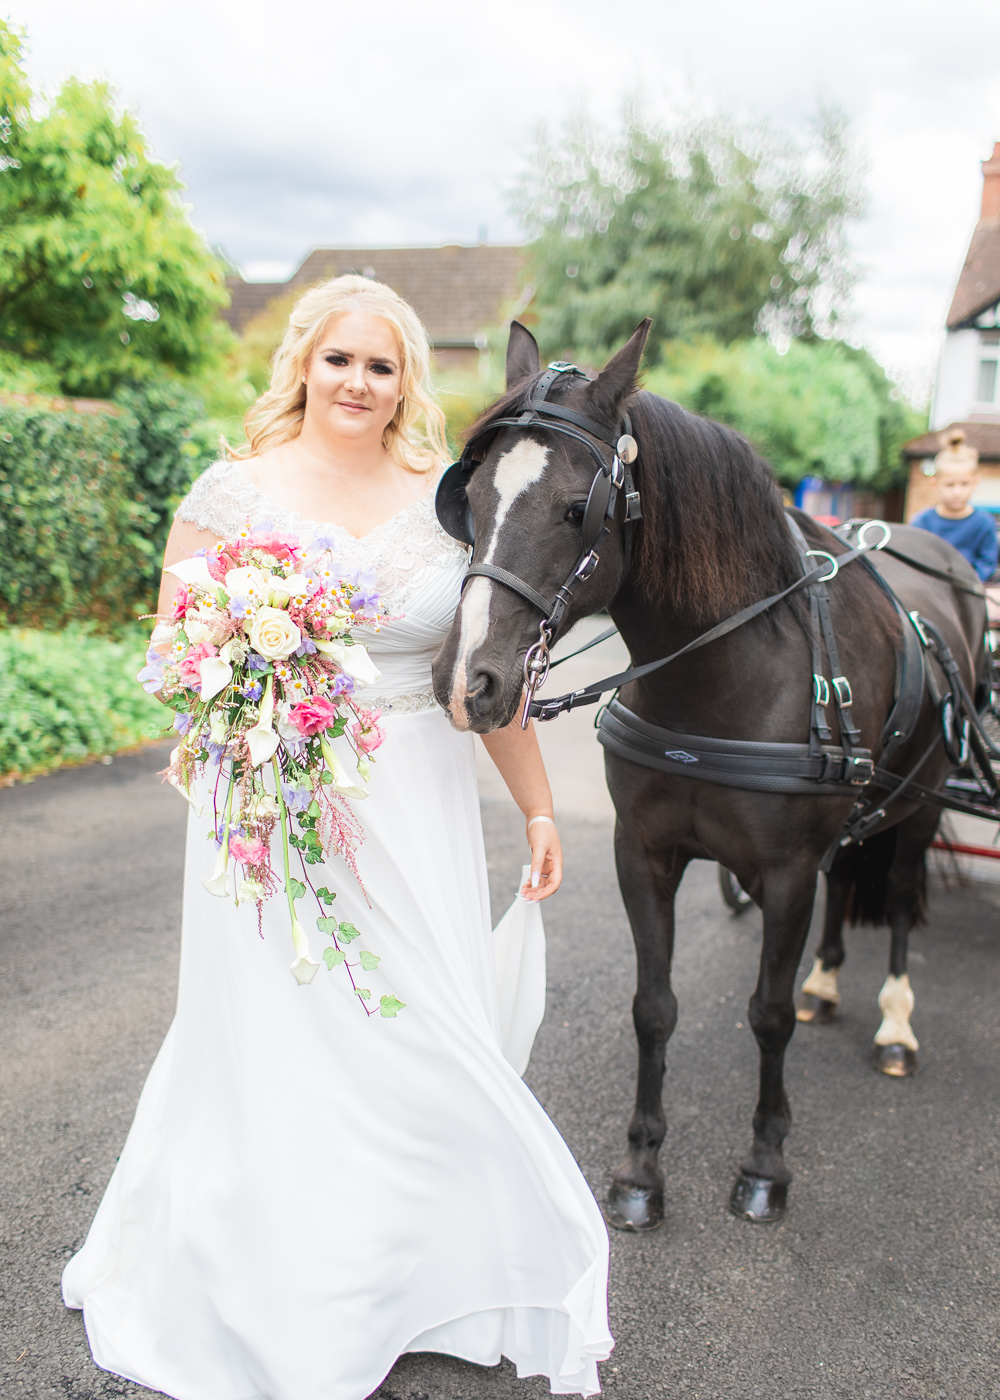 Bride Bridal Short Sleeve Lace V Neck Dress Gown Horse Carriage Cascade Waterfall Bouquet Bedfordshire Tipi Wedding Natalie Stevenson Photography